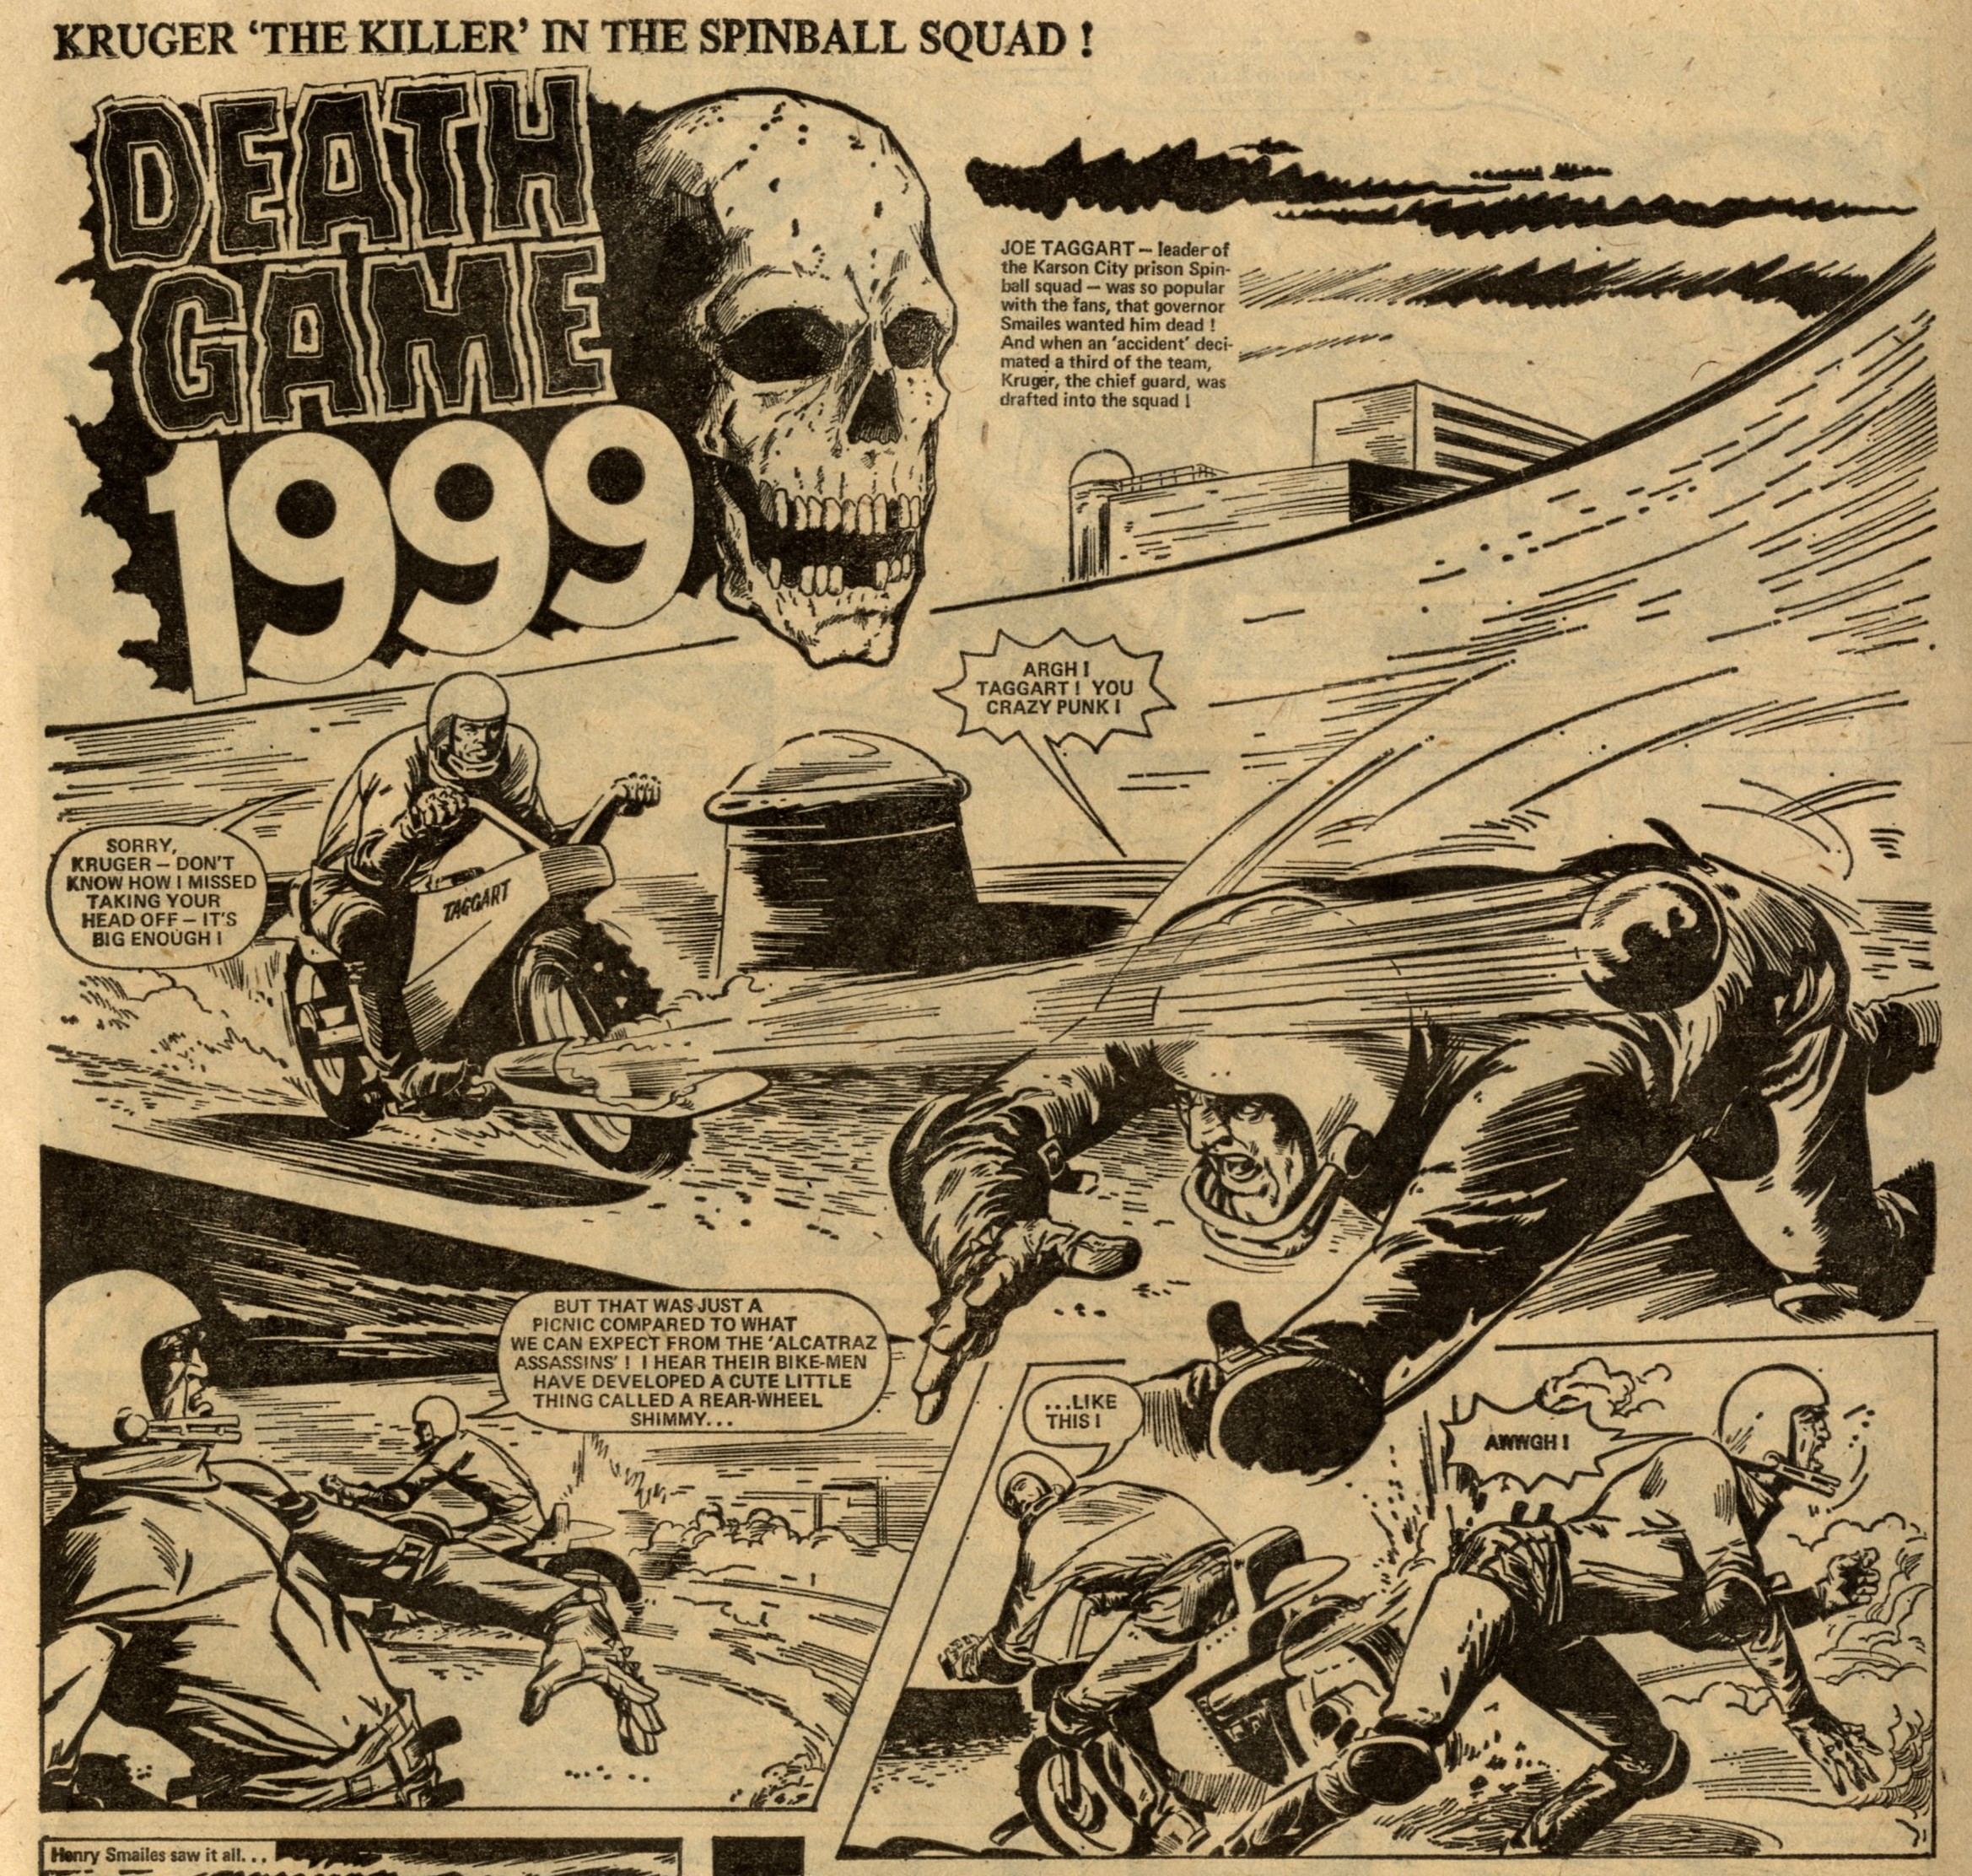 Death Game 1999: Tom Tully (writer), Costa (artist)